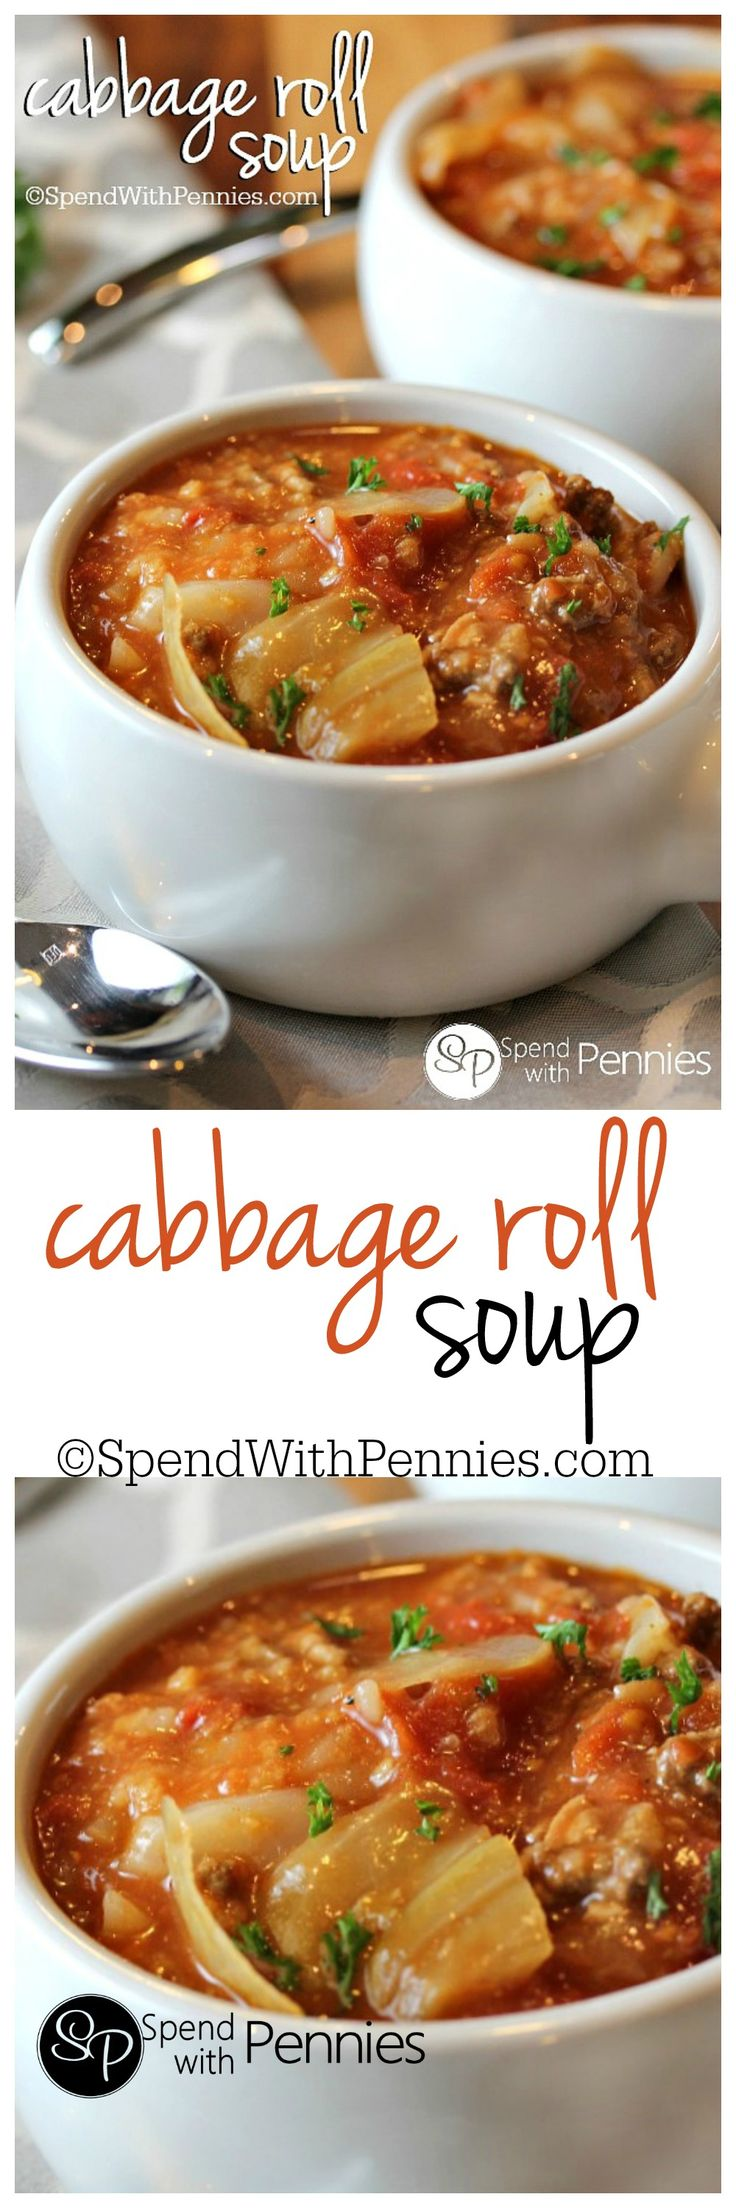 Cabbage Roll Soup is my favorite way to enjoy cabbage rolls! Loads of cabbage, meat and rice in a flavorful tomato broth make the perfect comfort food!